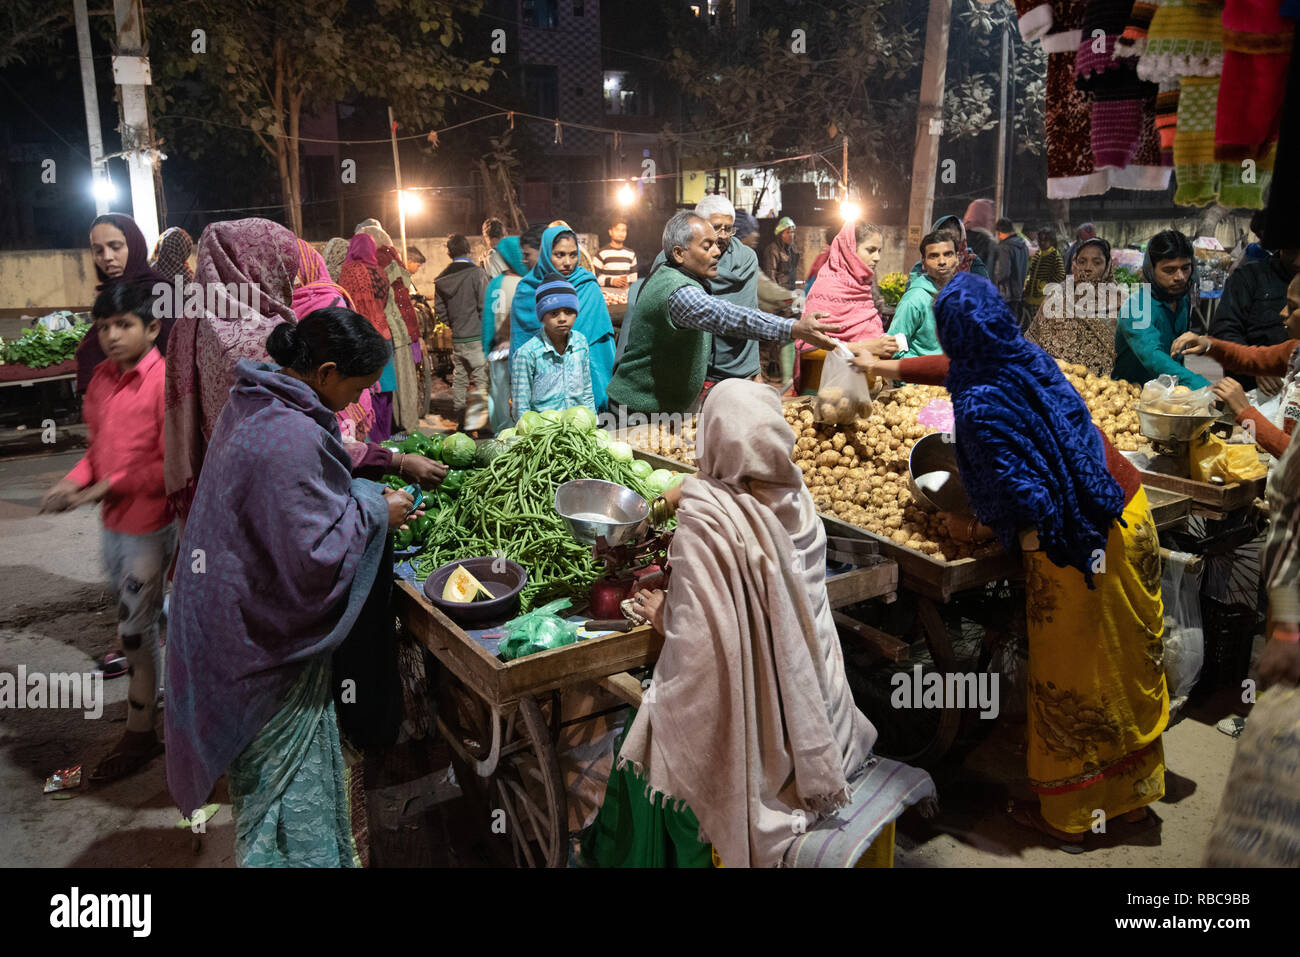 Multiple interactions as shoppers crowd around bustling vegetable market stalls in the night in JJ Colony, Madanpur Khadar, New Delhi, India. - Stock Image